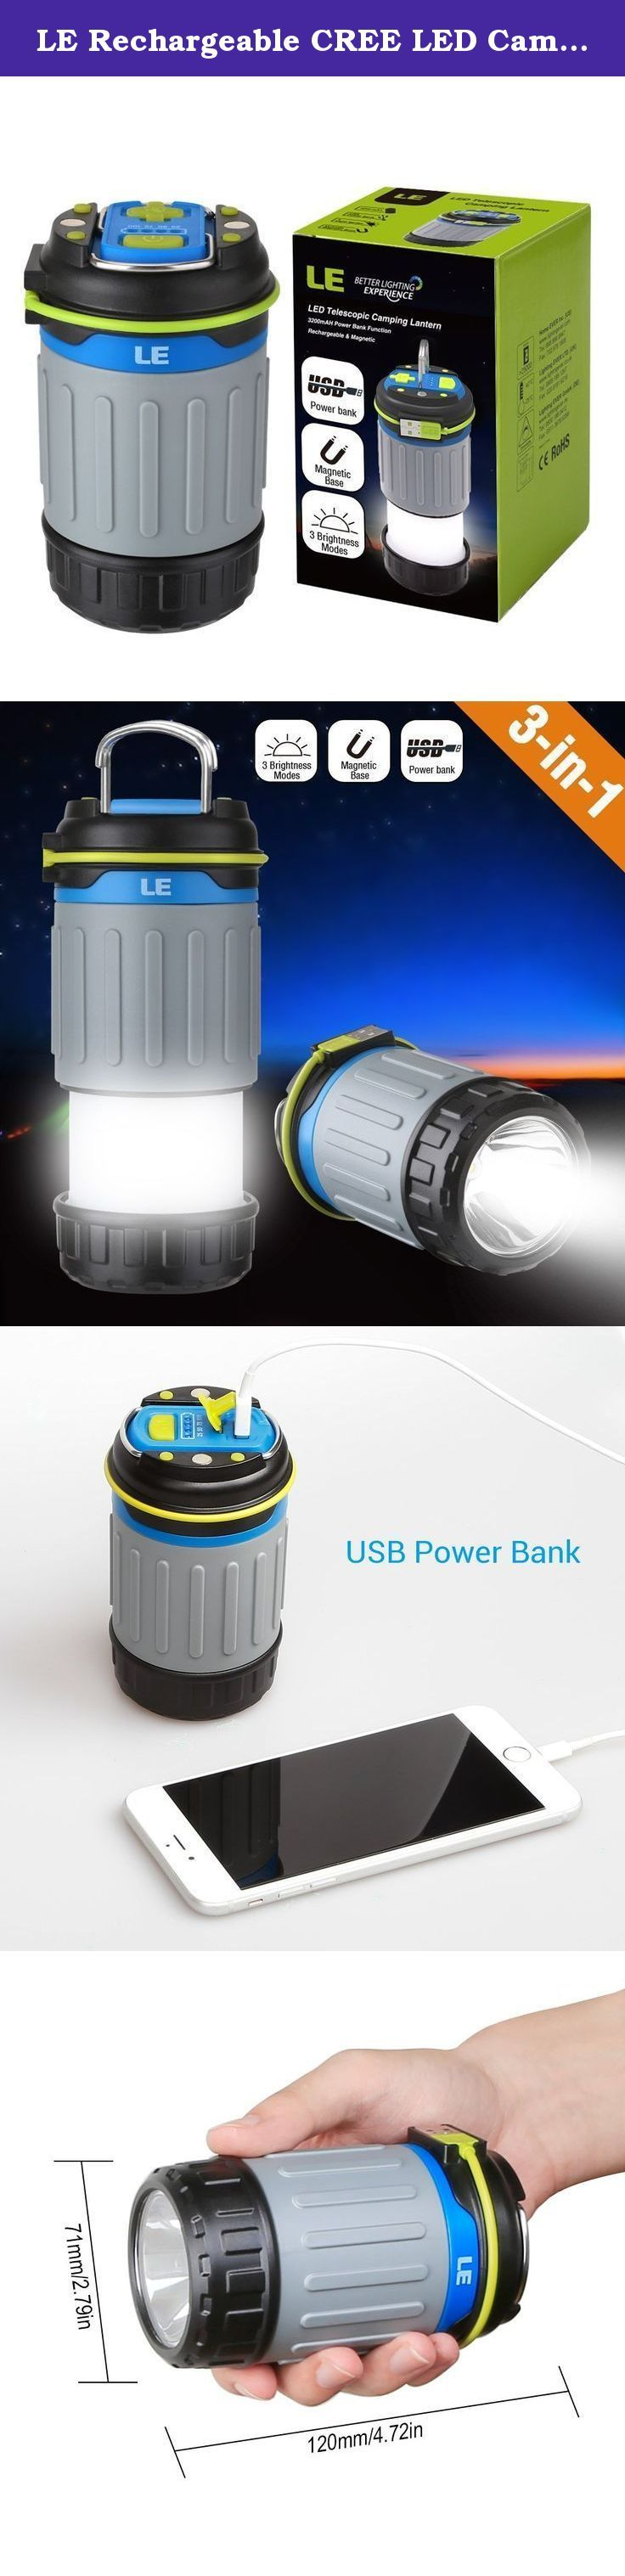 LE Rechargeable CREE LED Camping Lantern, 330lm, 3200 mAh USB Power Bank, Collapsible & Magnetic Camping Lights, 3 Modes Tent Light, Emergency Lantern/Portable Charger for Outdoor Activities. Rechargeable Batteries With 3200mAh built-in -rechargeable batteries (USB cable provided), you can take it anywhere. -The USB charging cord is wrapped around the light, making it neater and convenient. It is there when you need to charge it, no hunting for the cord. -A row of blue indicator lights…